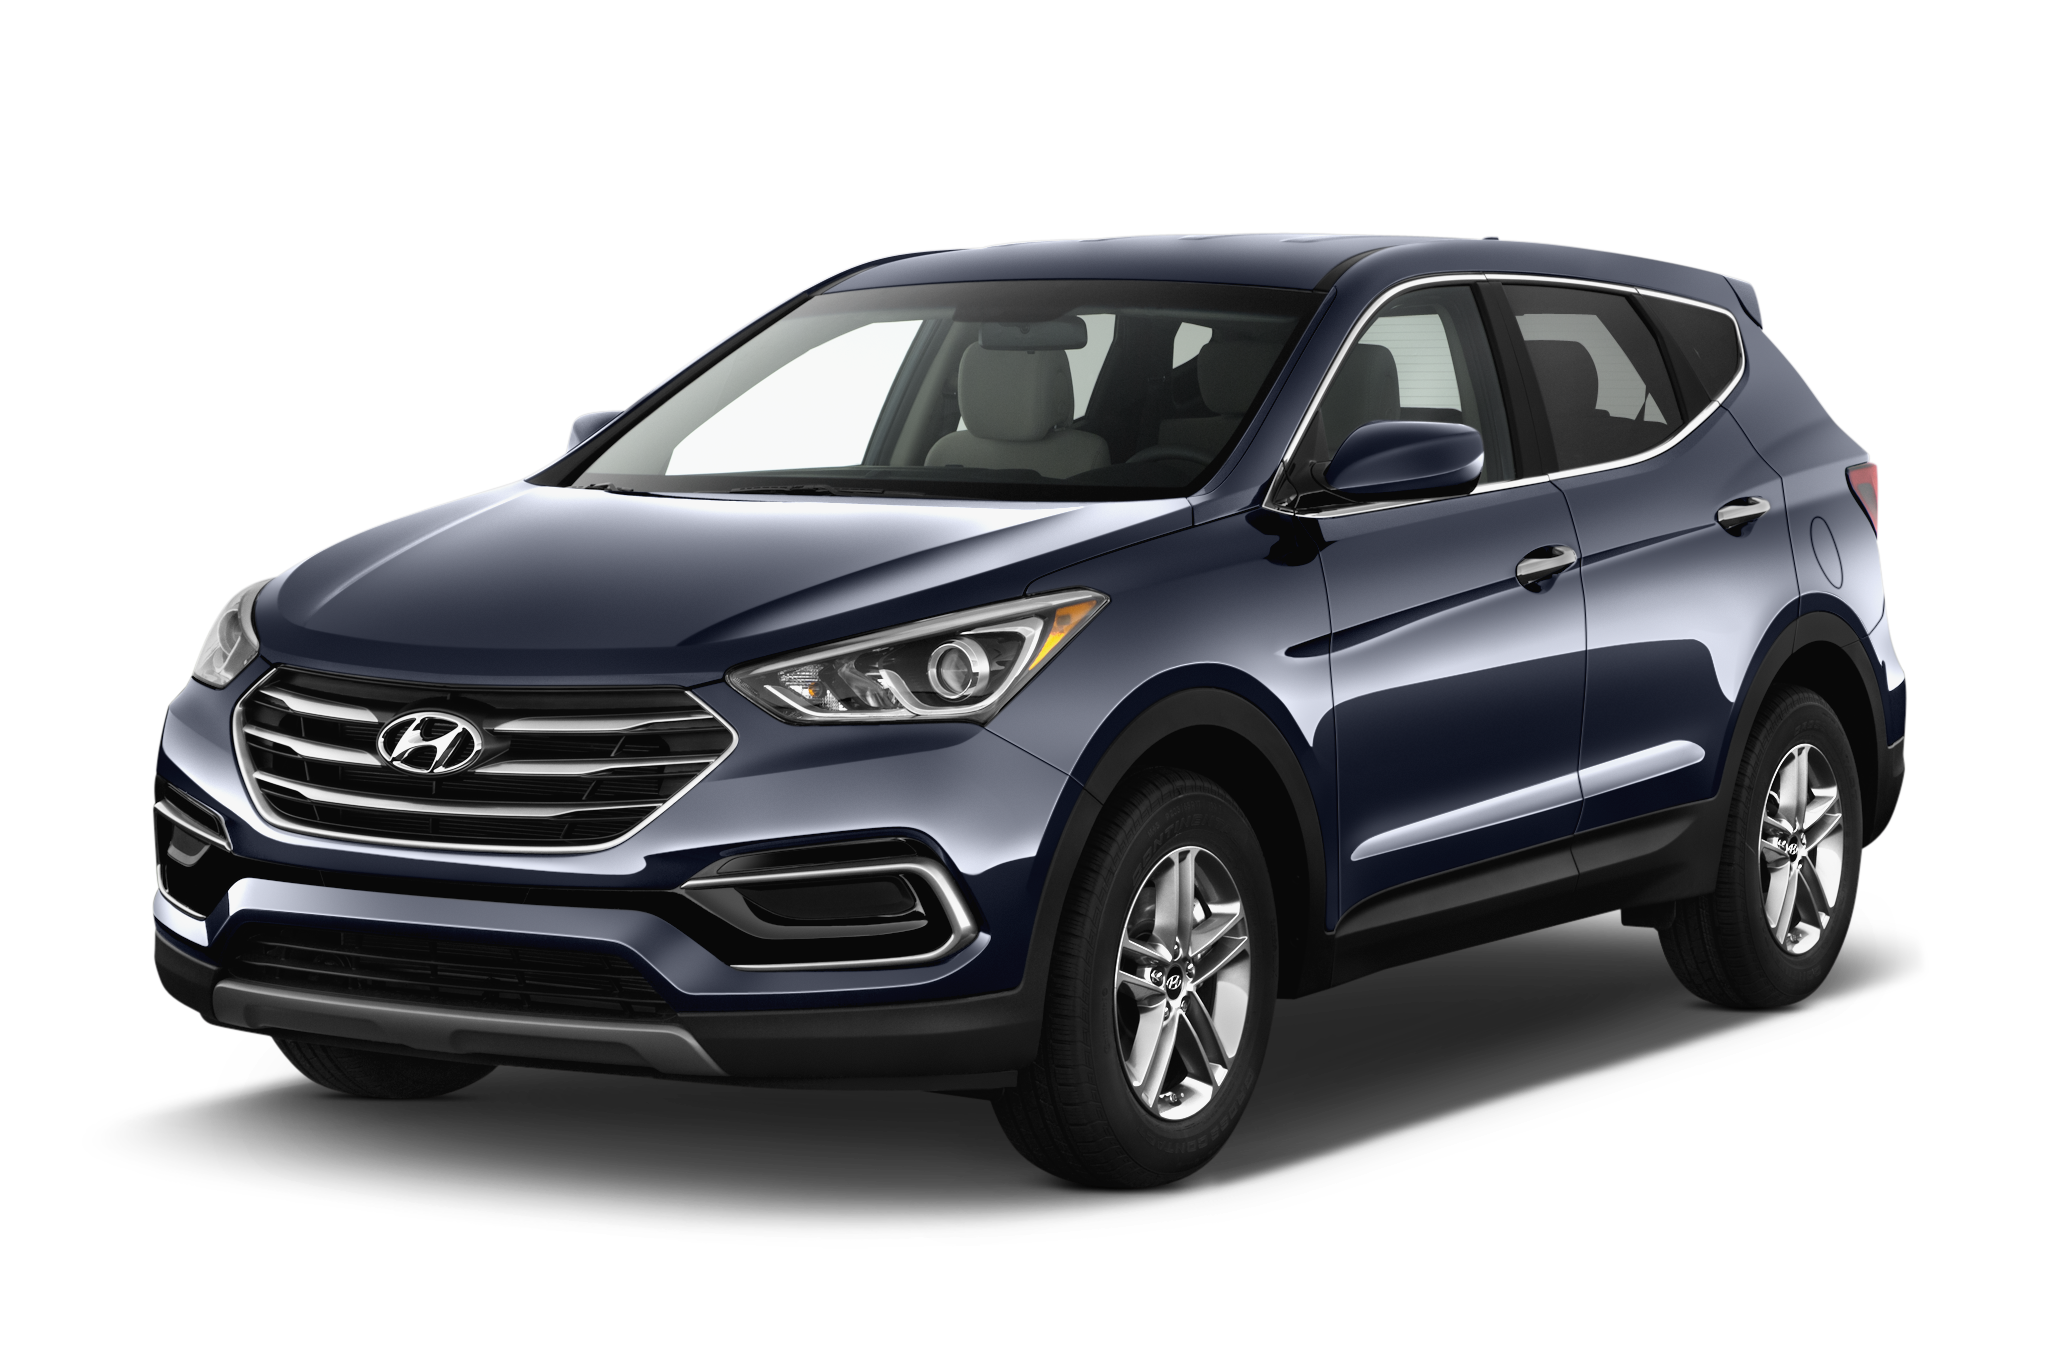 hyundai santa fe price in bahrain new hyundai santa fe. Black Bedroom Furniture Sets. Home Design Ideas